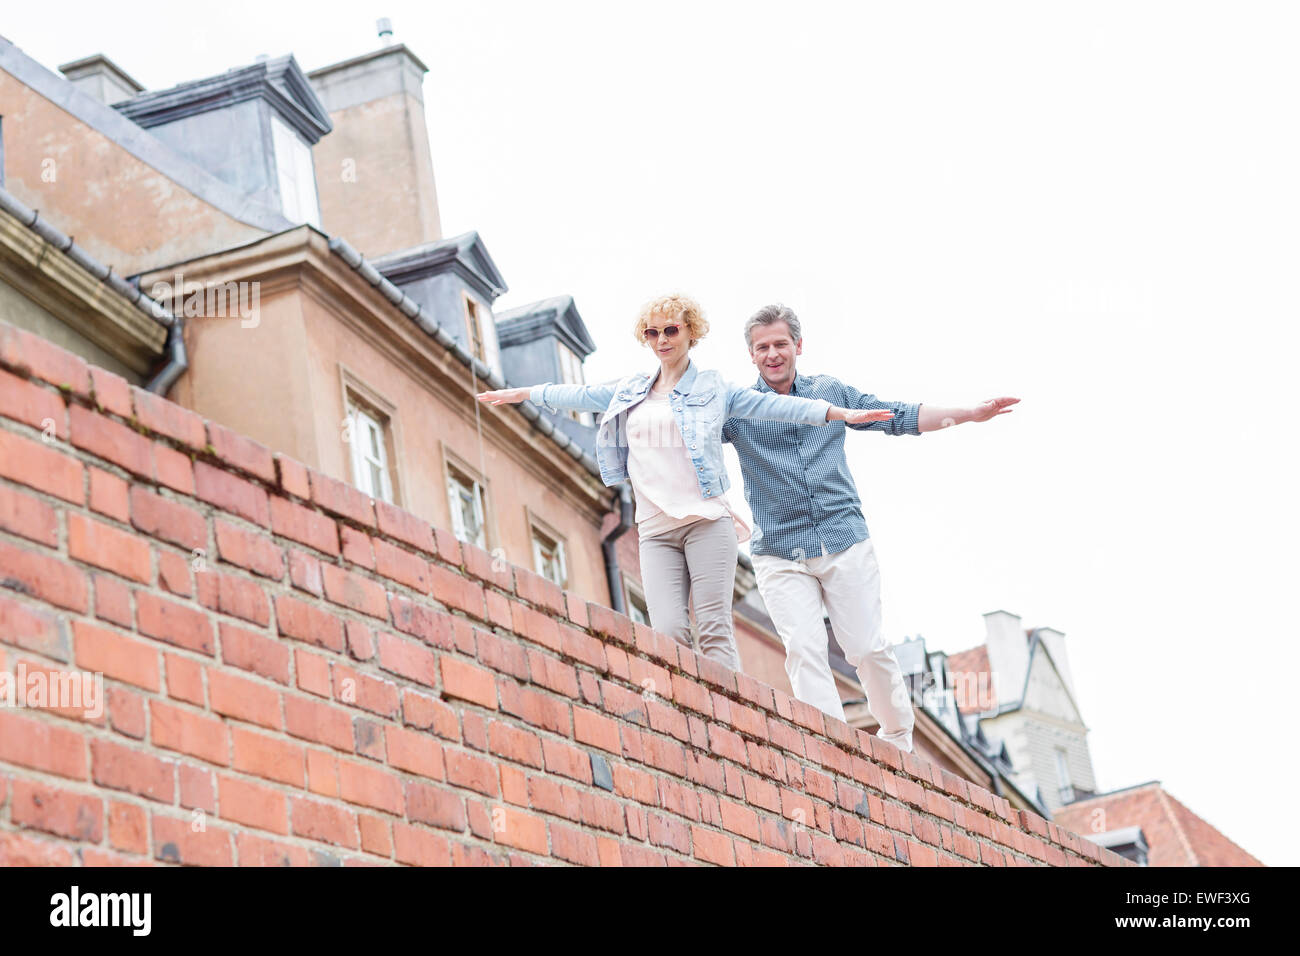 Low angle view of middle-aged couple with arms outstretched walking on brick wall against clear sky - Stock Image